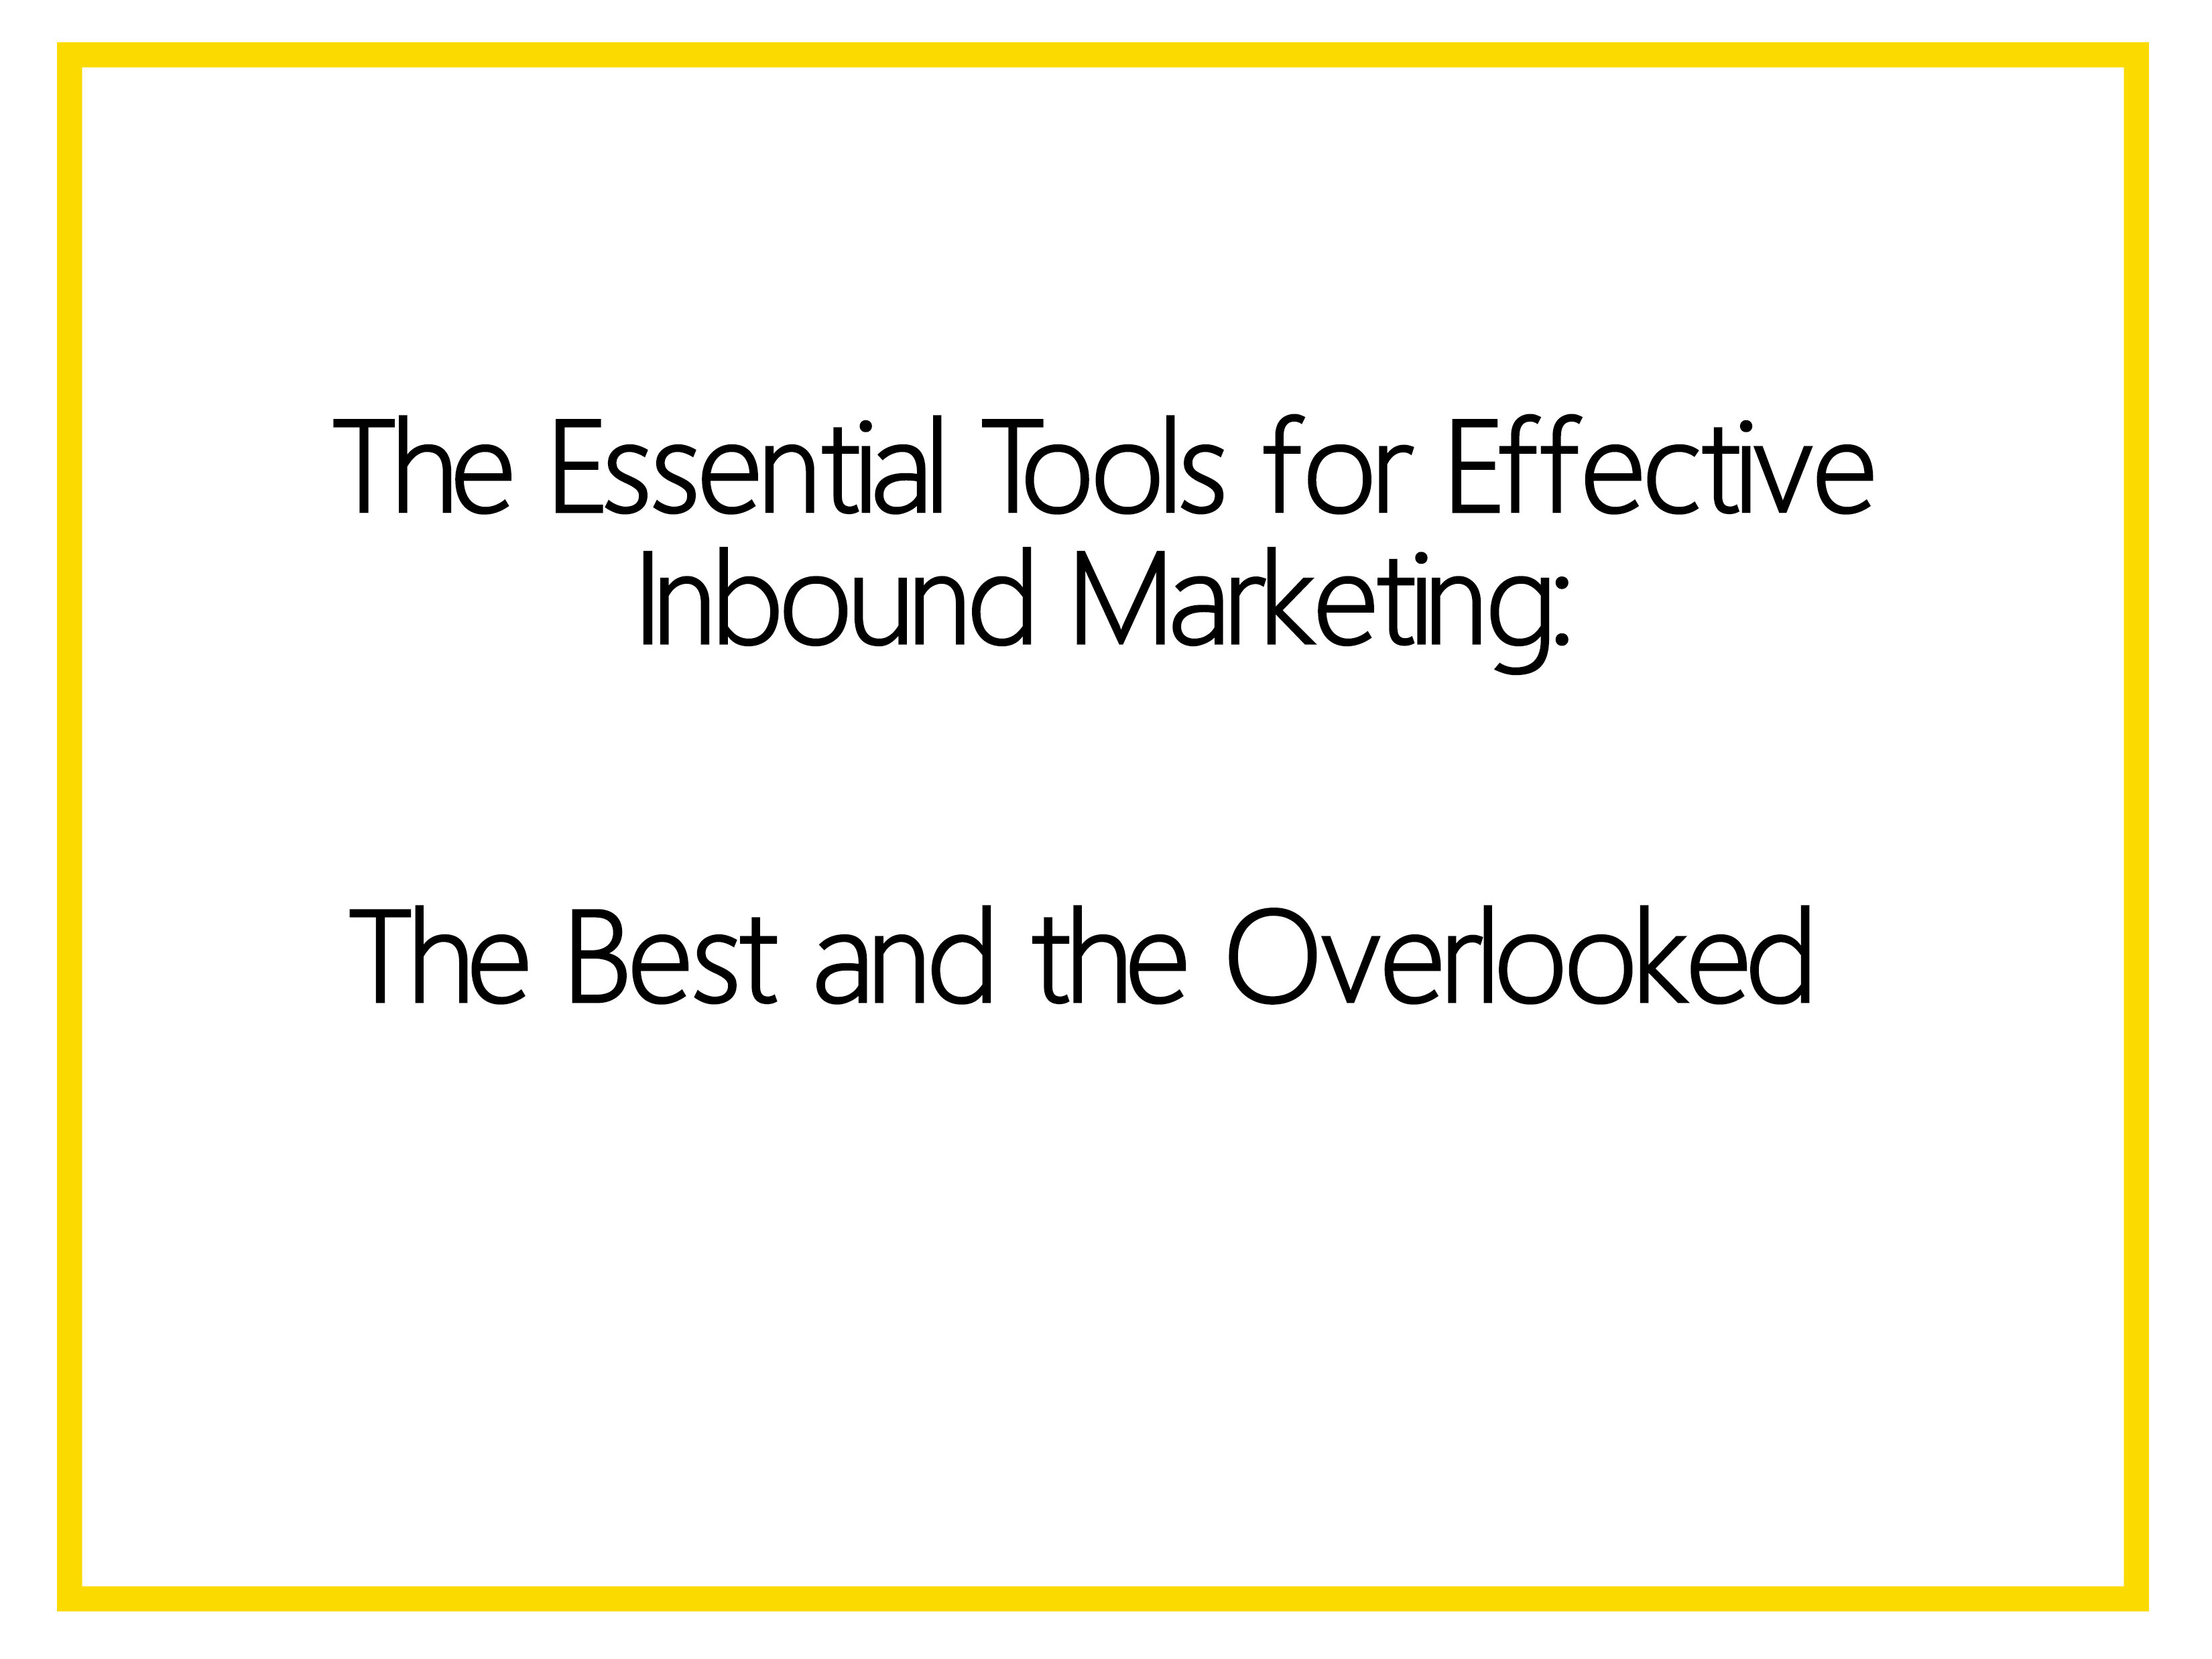 inbound-marketing-tools-50